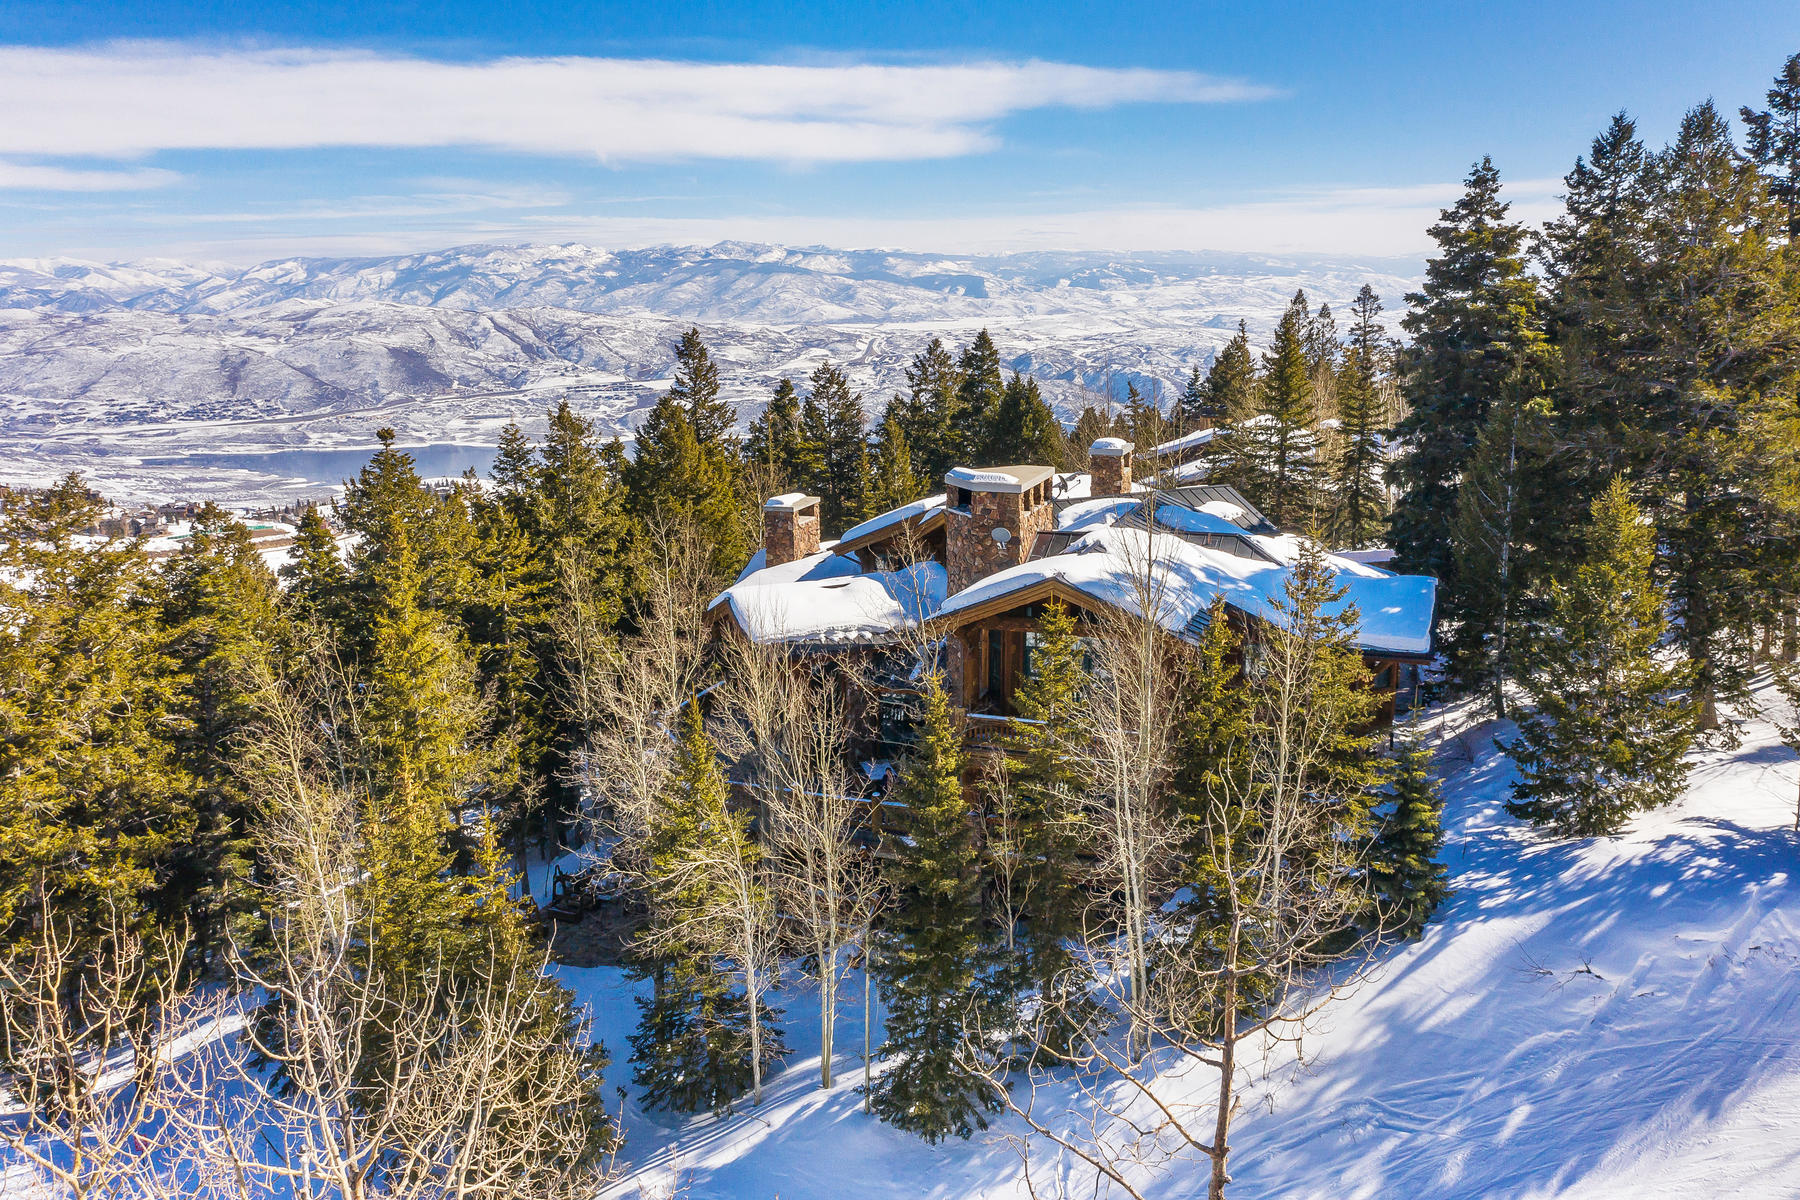 Single Family Homes for Active at Luxury Deer Valley Private Retreat with Ultimate Ski Access and Views 7975 Bald Eagle Dr Park City, Utah 84060 United States